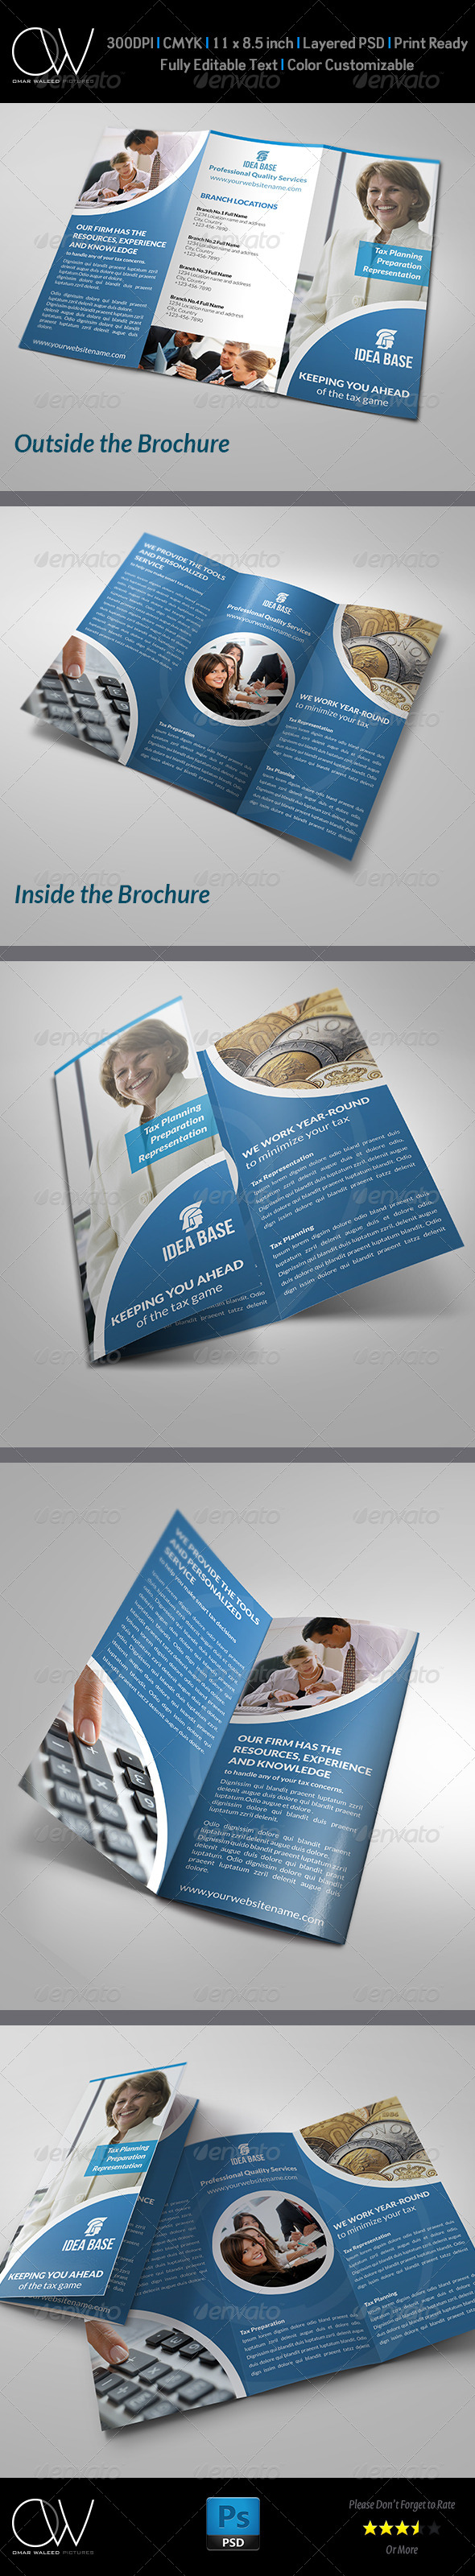 GraphicRiver Accounting Services Tri-Fold Brochure 5033071